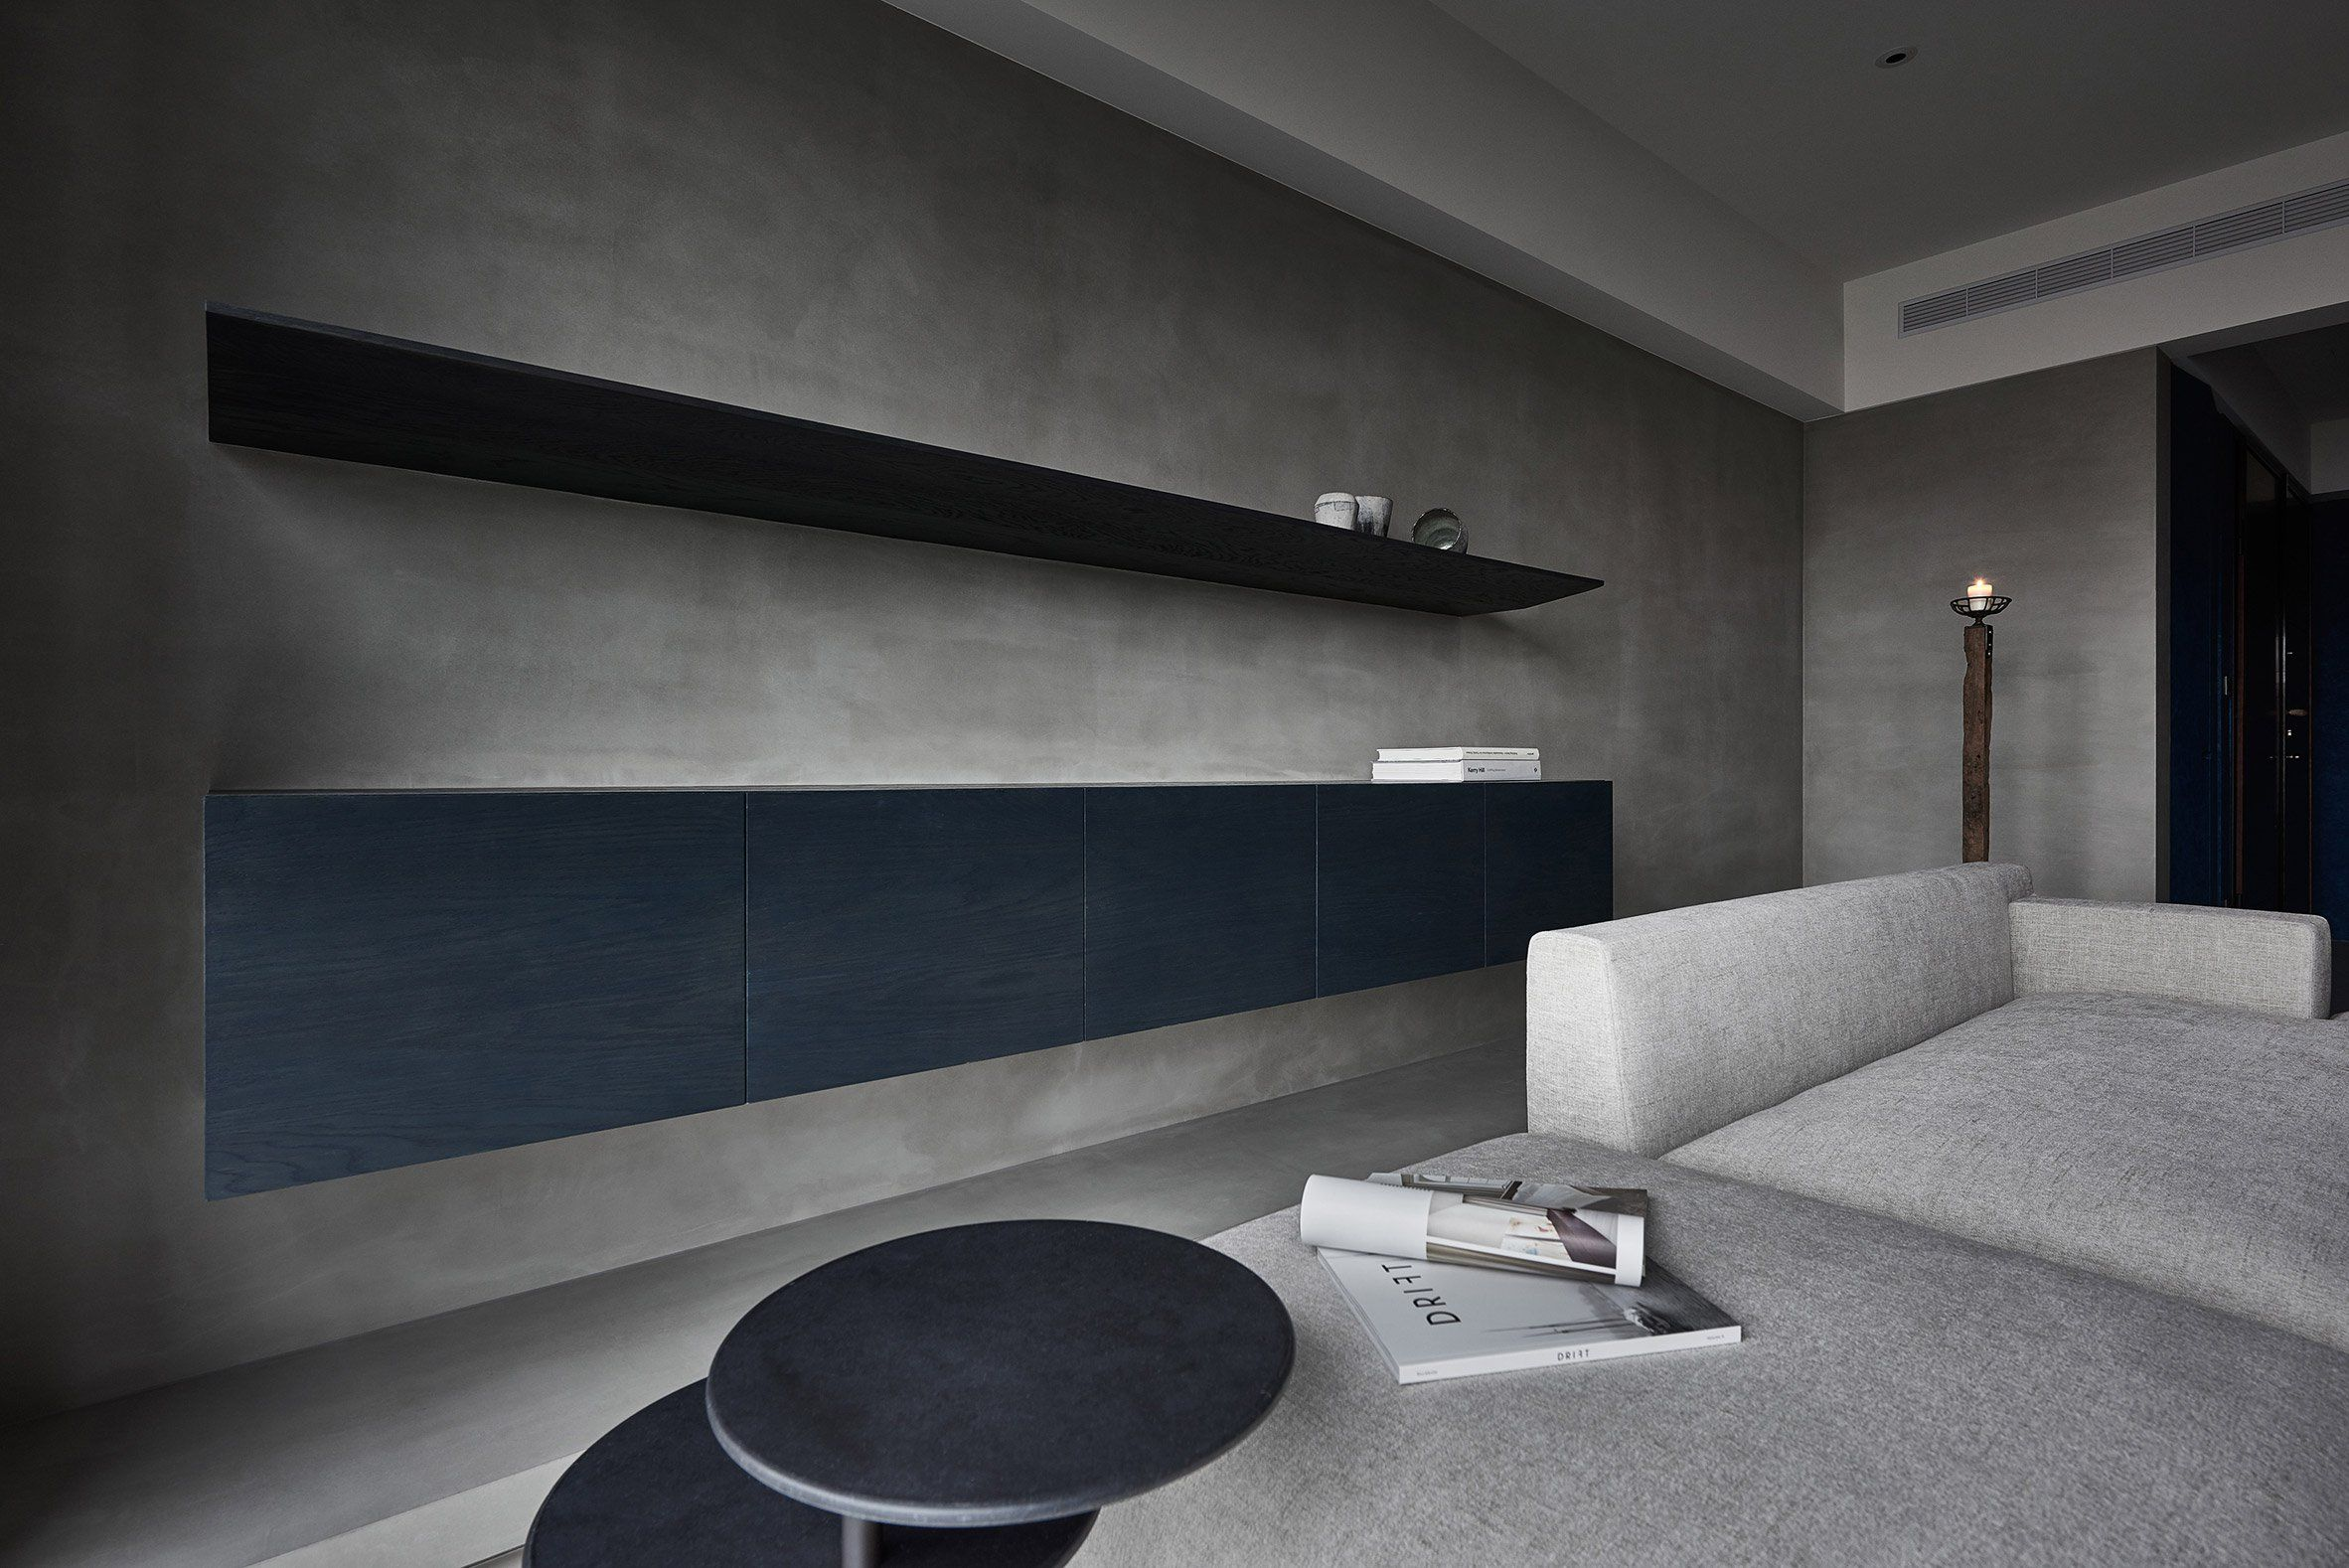 Shades of grey decorate sombre luxury apartment in taiwan 室